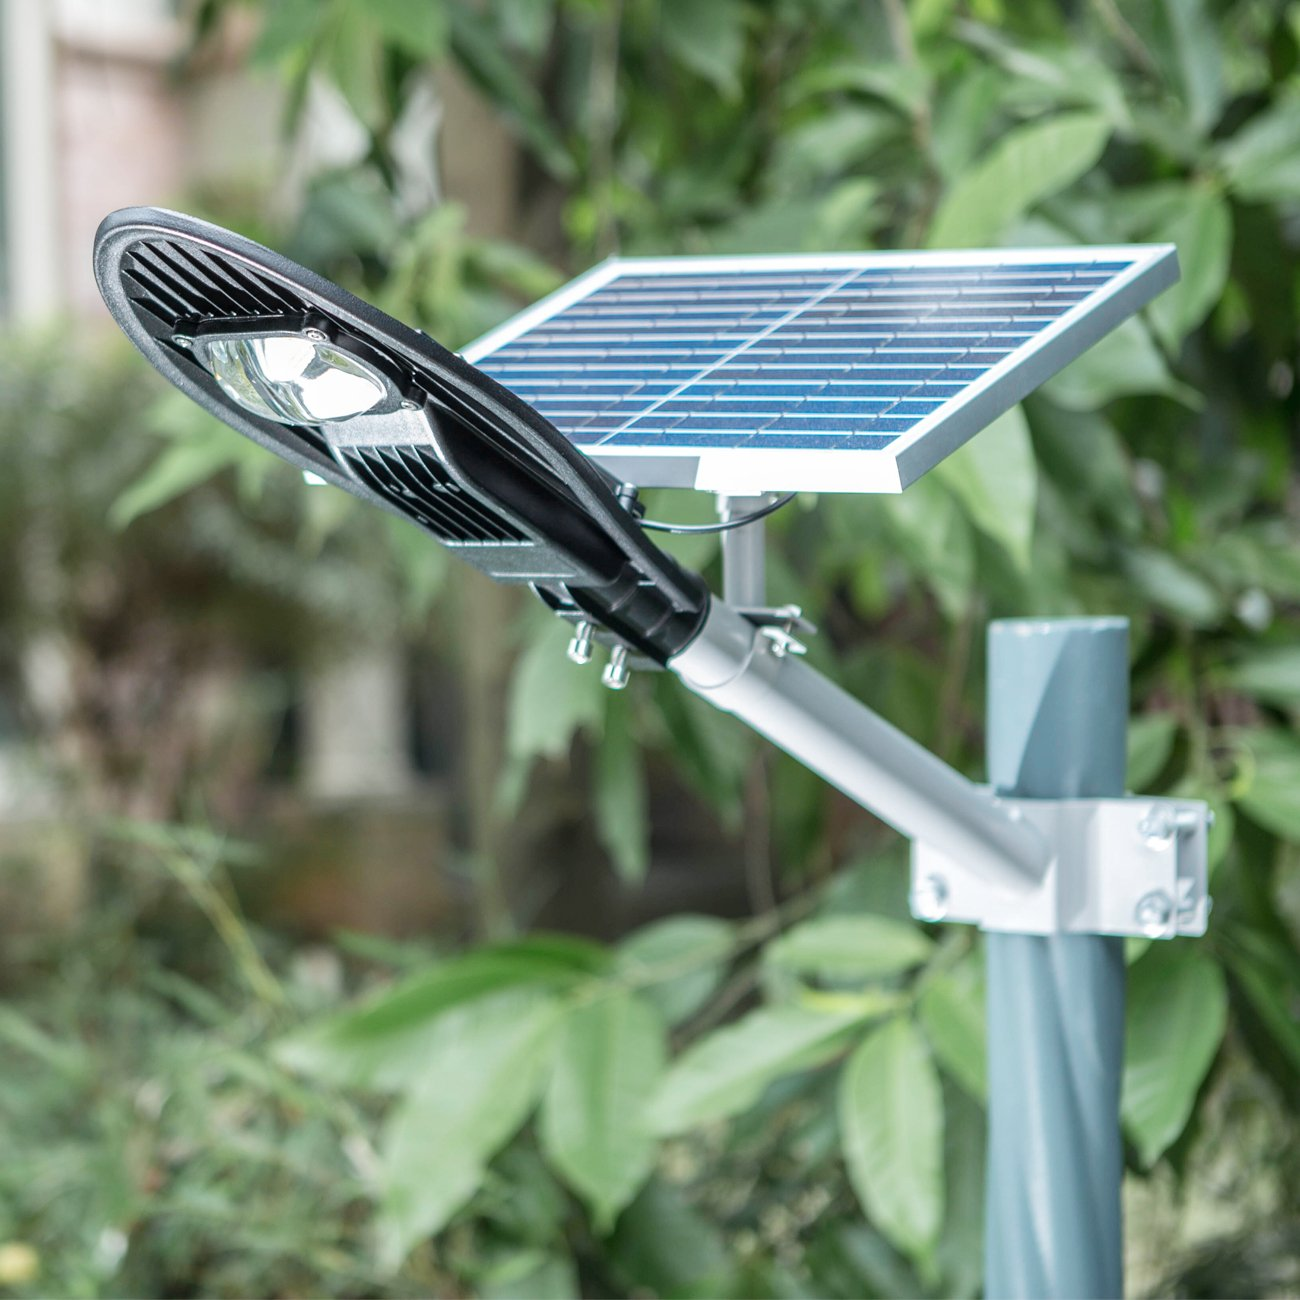 SHANGBOYI Solar Street Light 12W 900 Lumens 6000K Optically Control Post Light IP65 LED Solar Path Light with 2 Installation Modes and Split Mounting for Home, Street, Garden, Outdoor, (Black) by SHANGBOYI